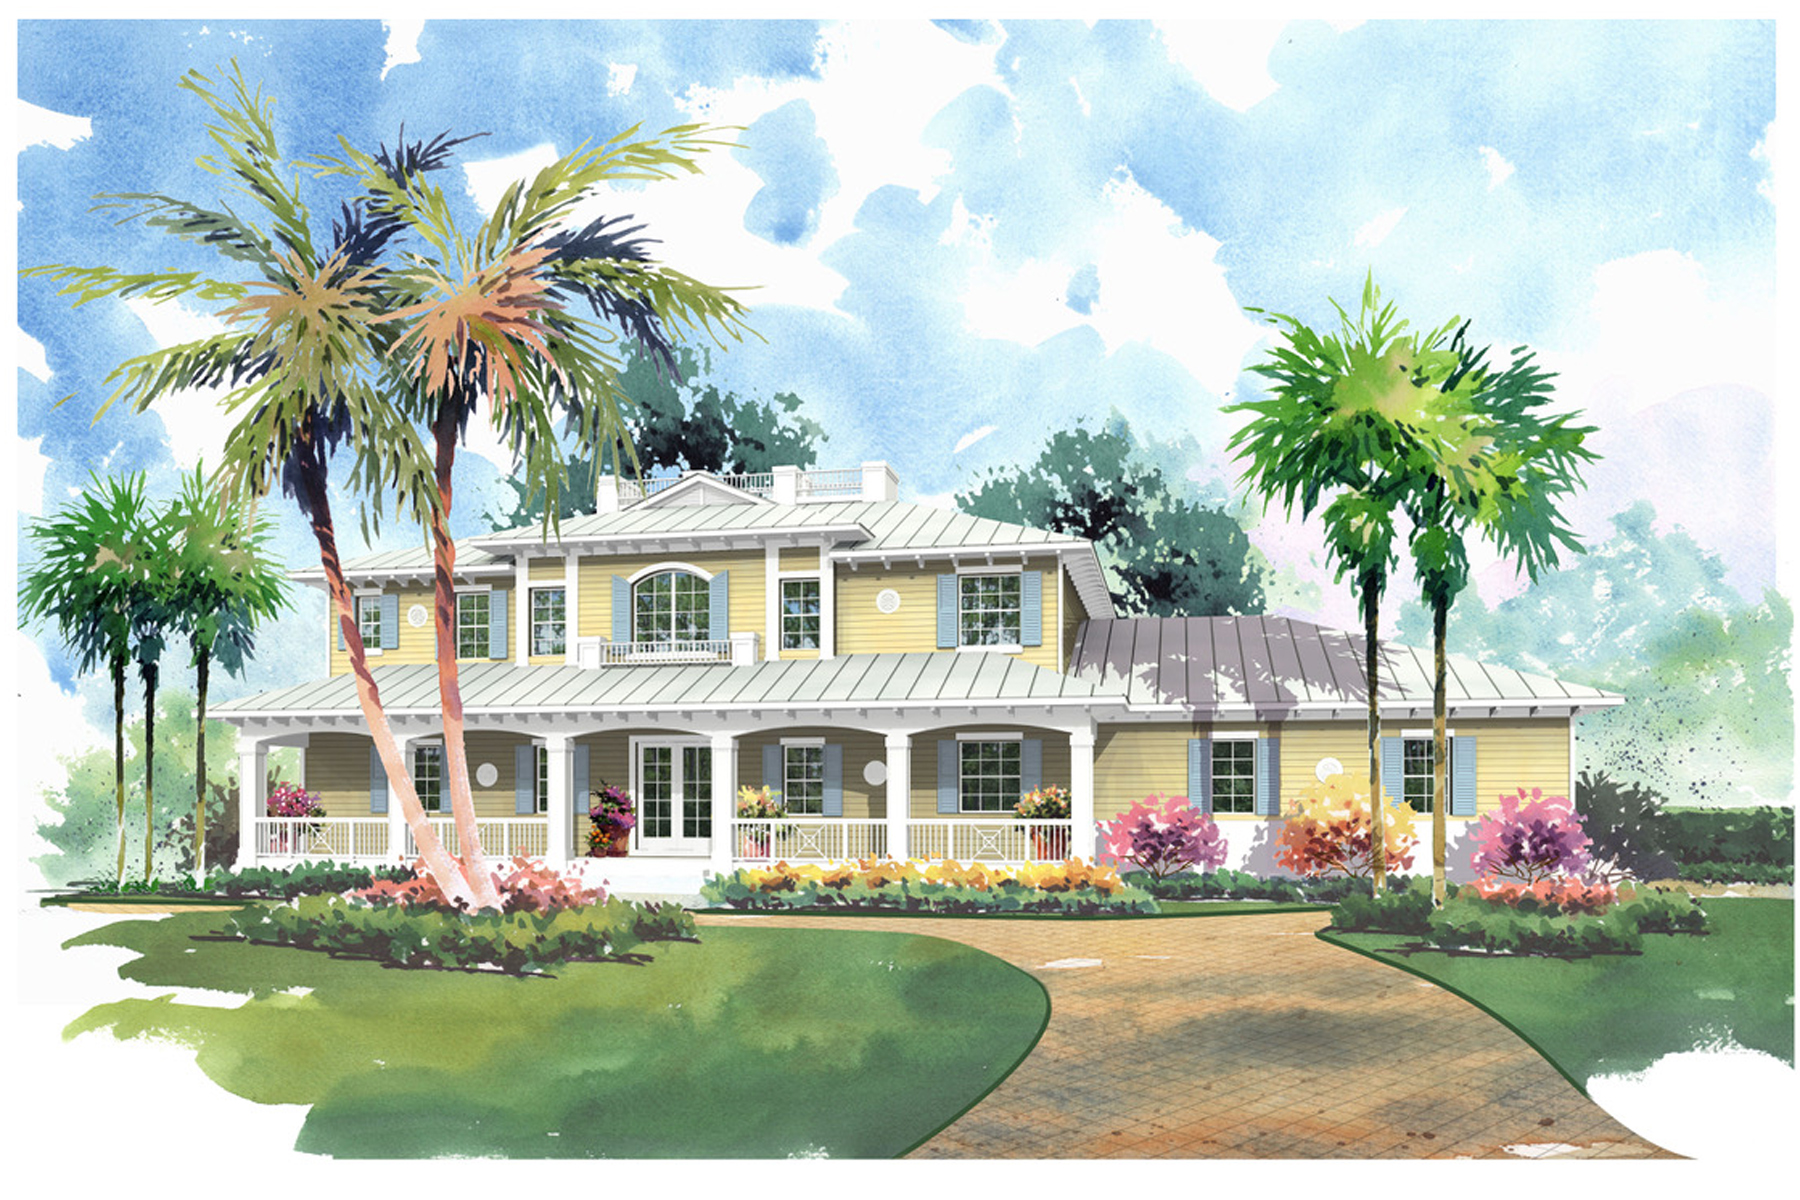 Maison unifamiliale pour l Vente à New Construction Home at Ocean Reef 17 Country Club Road Key Largo, Florida, 33037 États-Unis